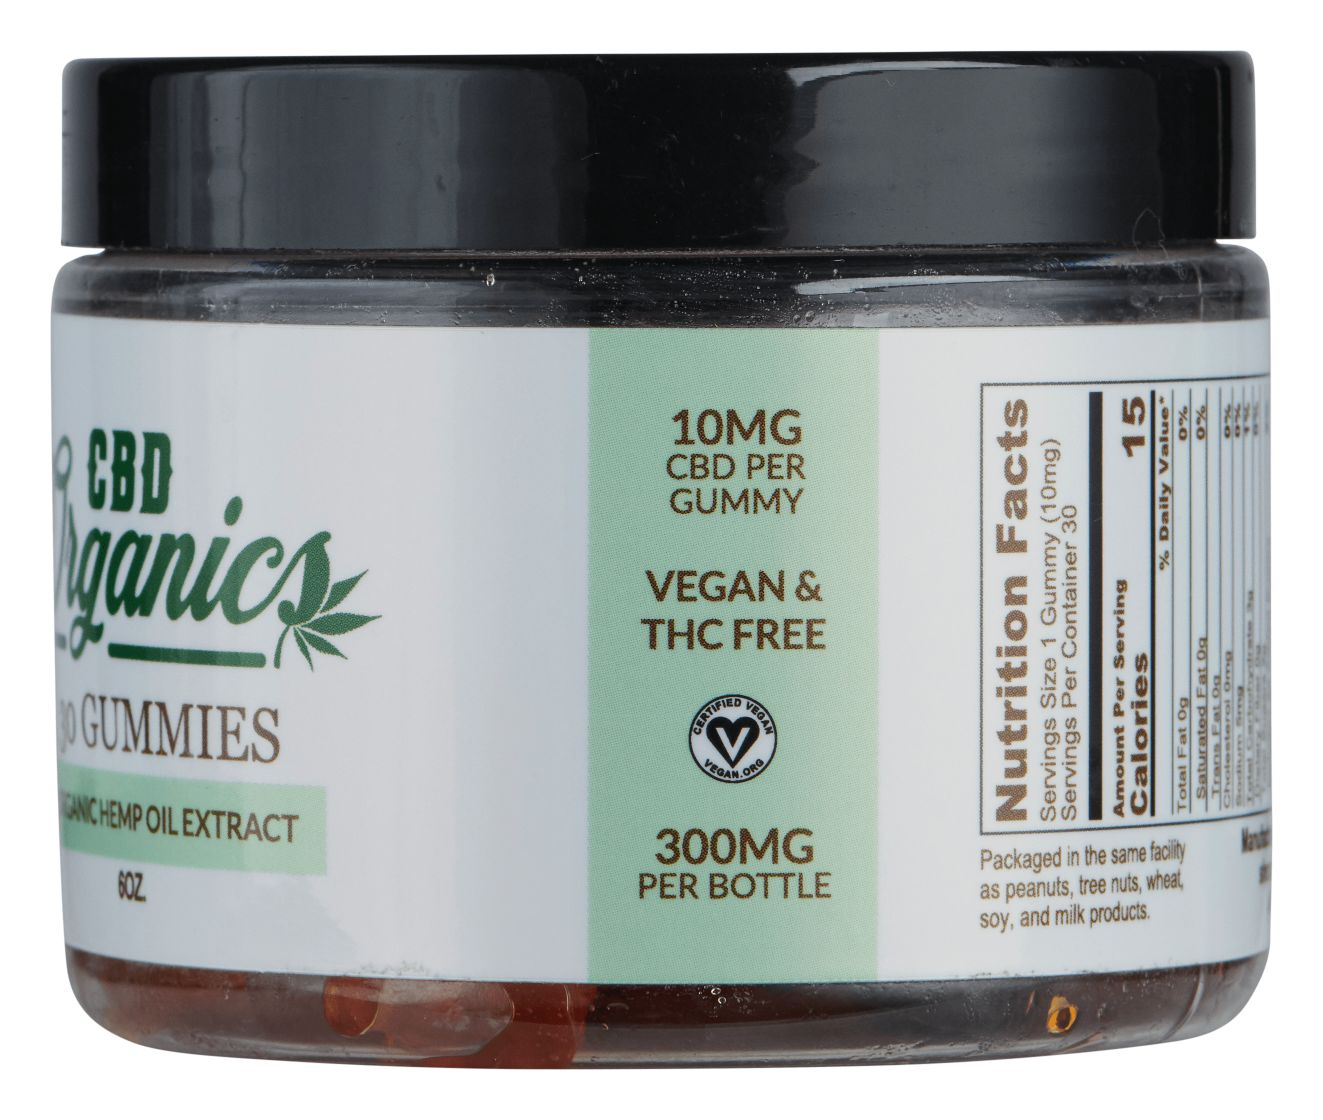 Vegan CBD Gummies 300mg - Shop CBD Organics